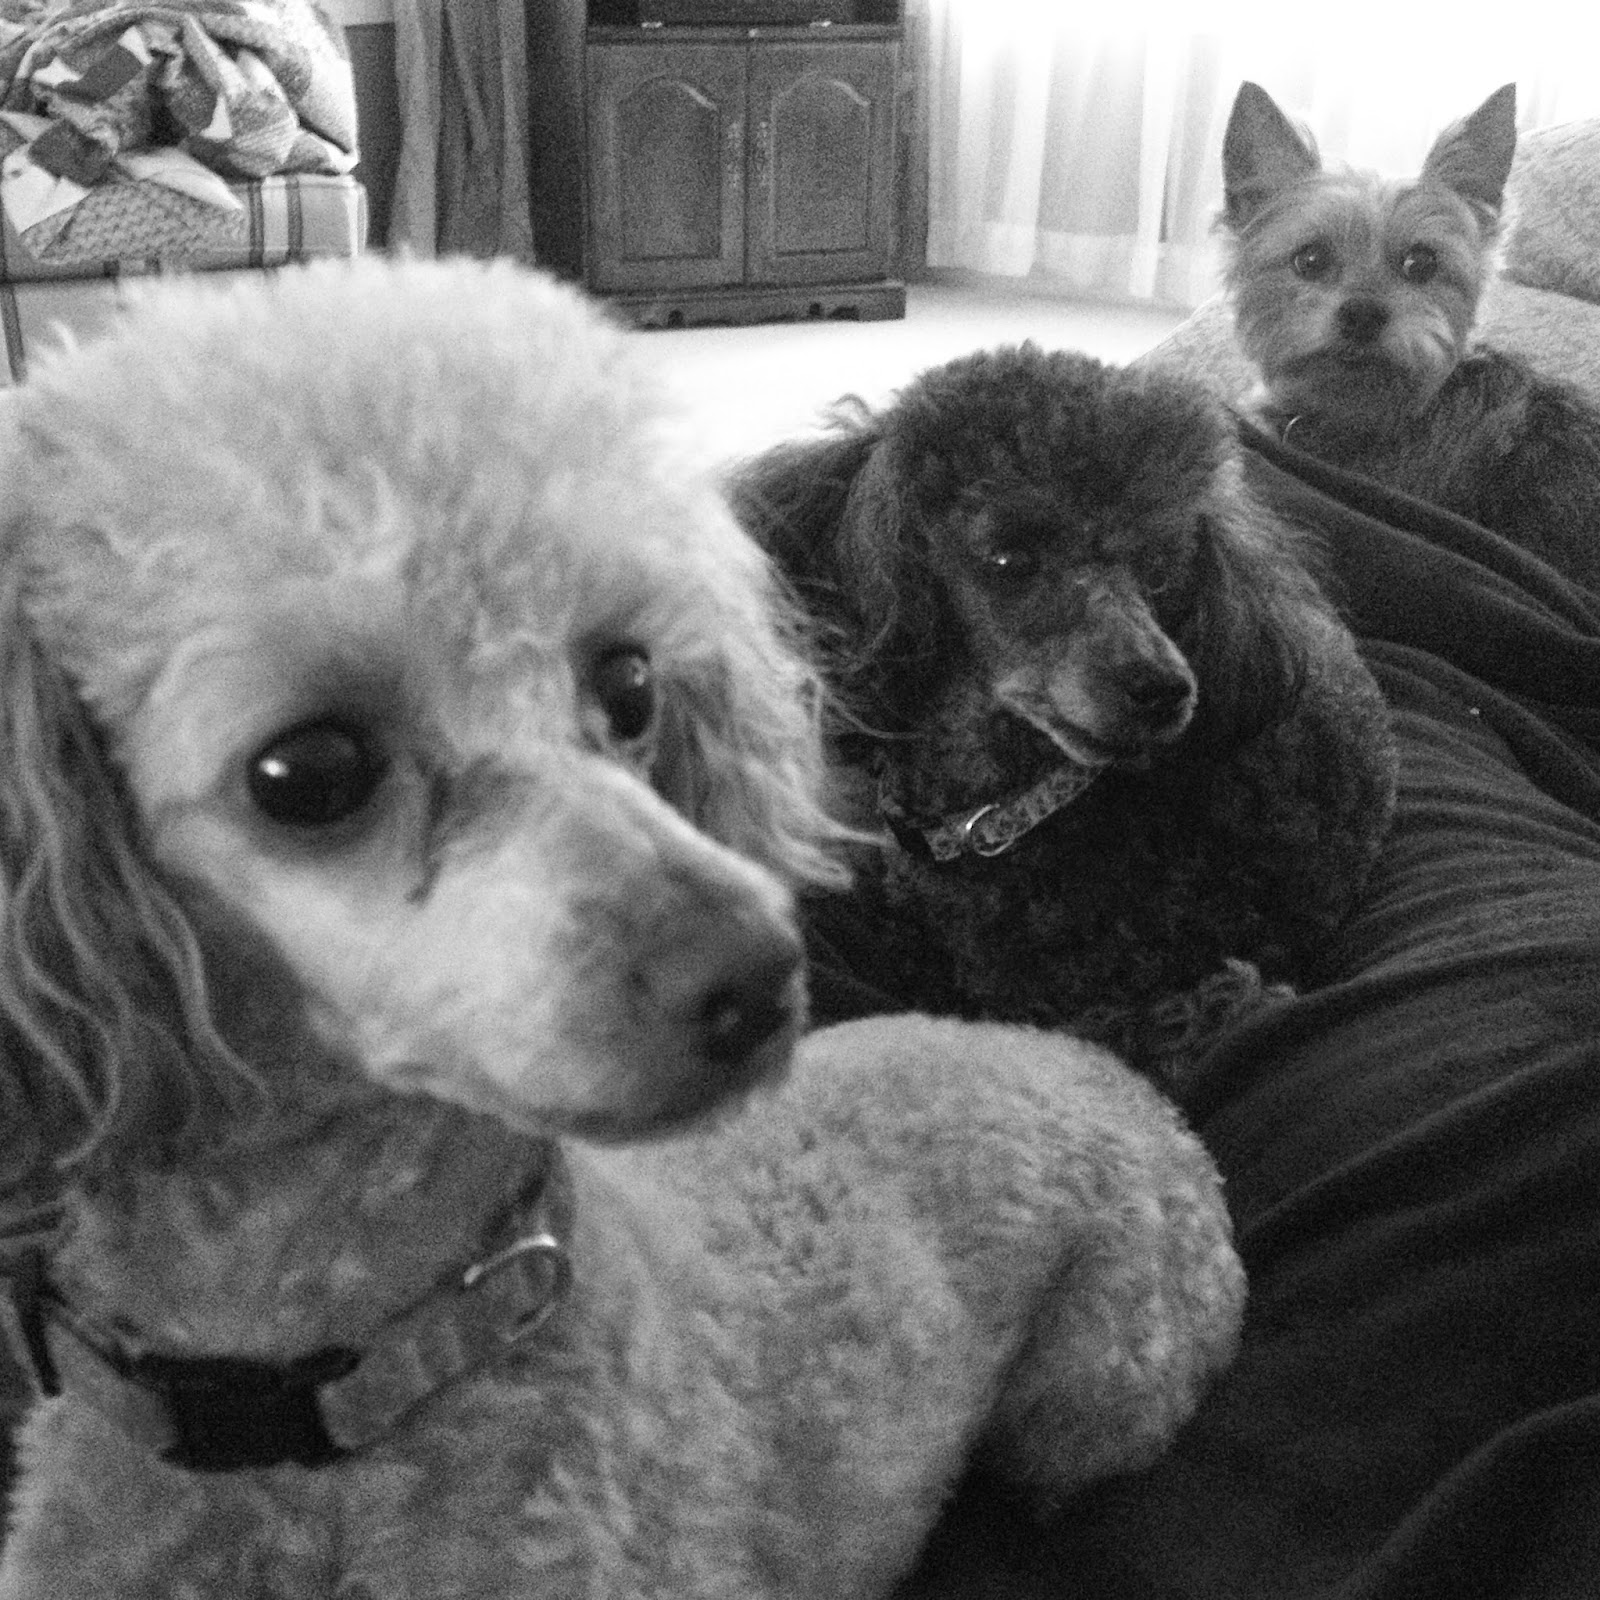 Poodles and a Yorkie